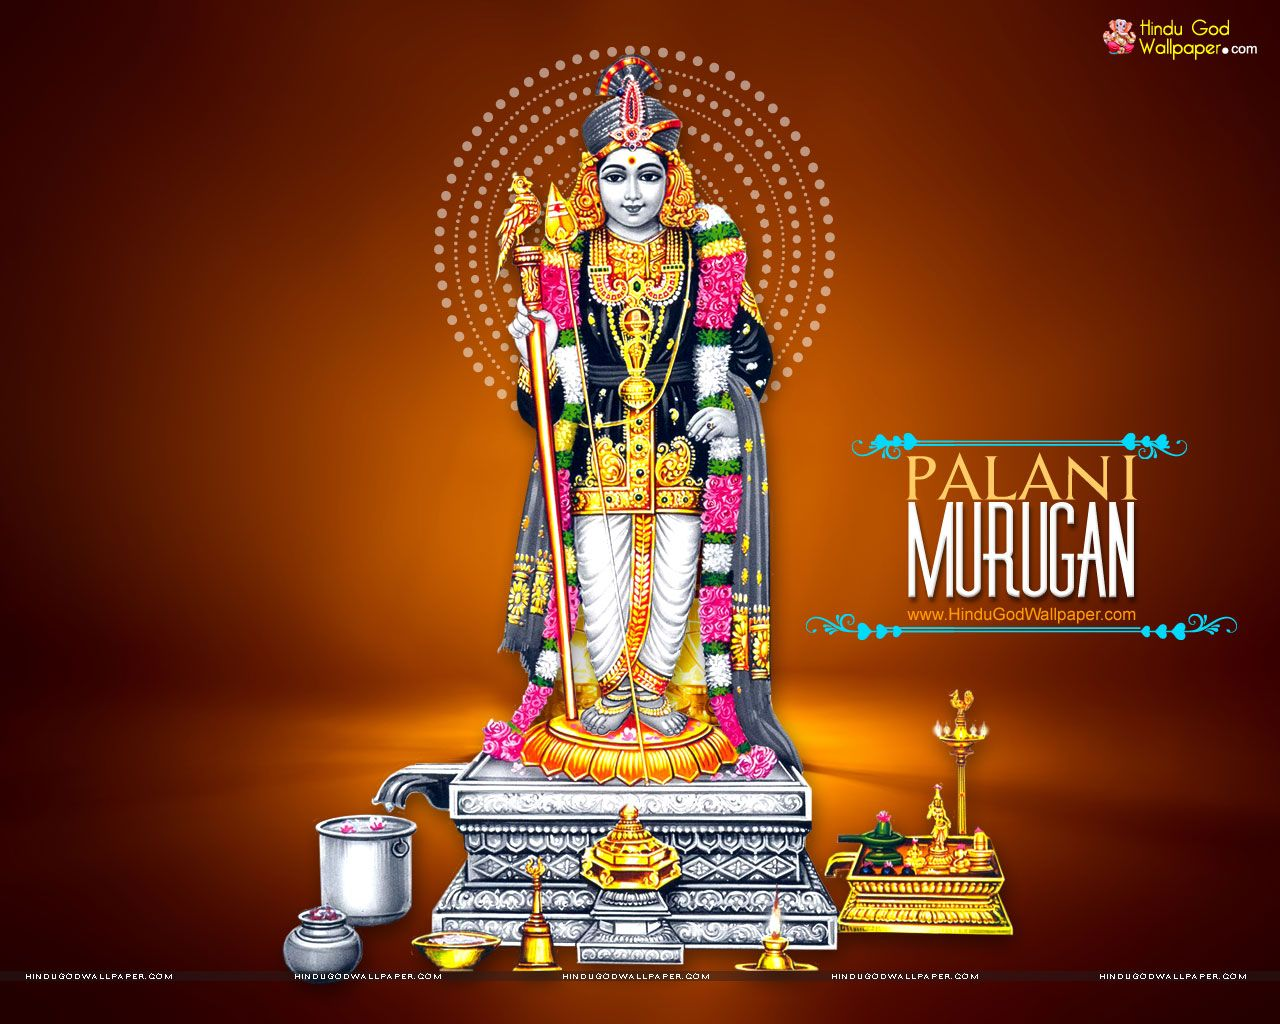 Palani Murugan Wallpapers Photos Free Download Lord Muruga